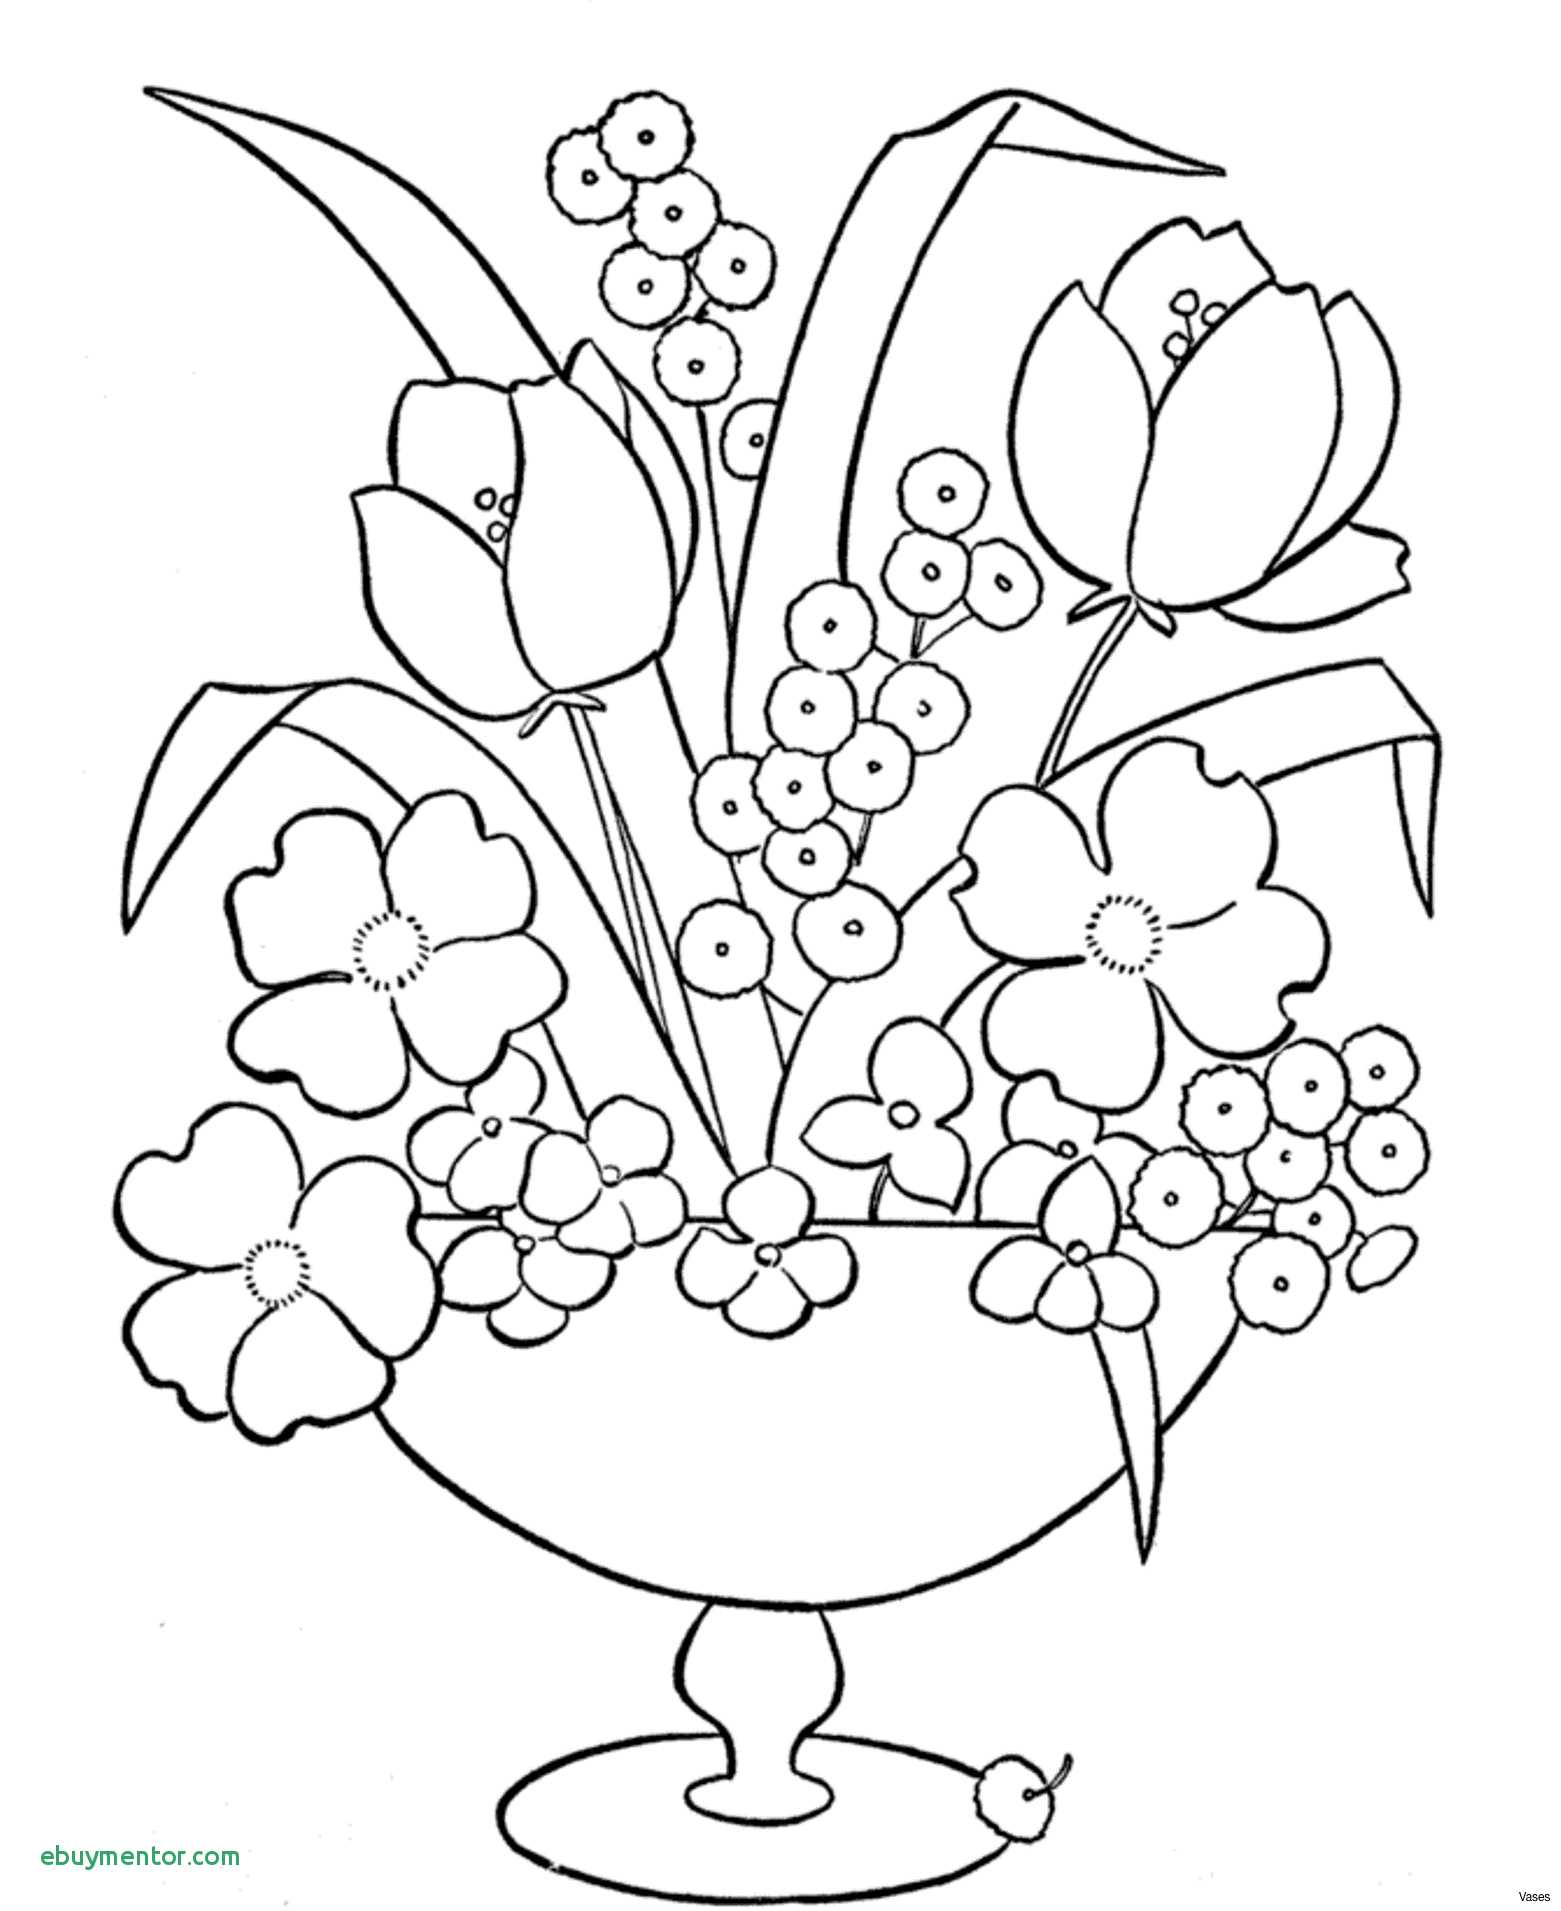 coloring pages to print for girls Collection-Printable Gothic Fairy Coloring Pages Coloring Pages for Girls Lovely Printable Cds 0d – Fun Time 5-m